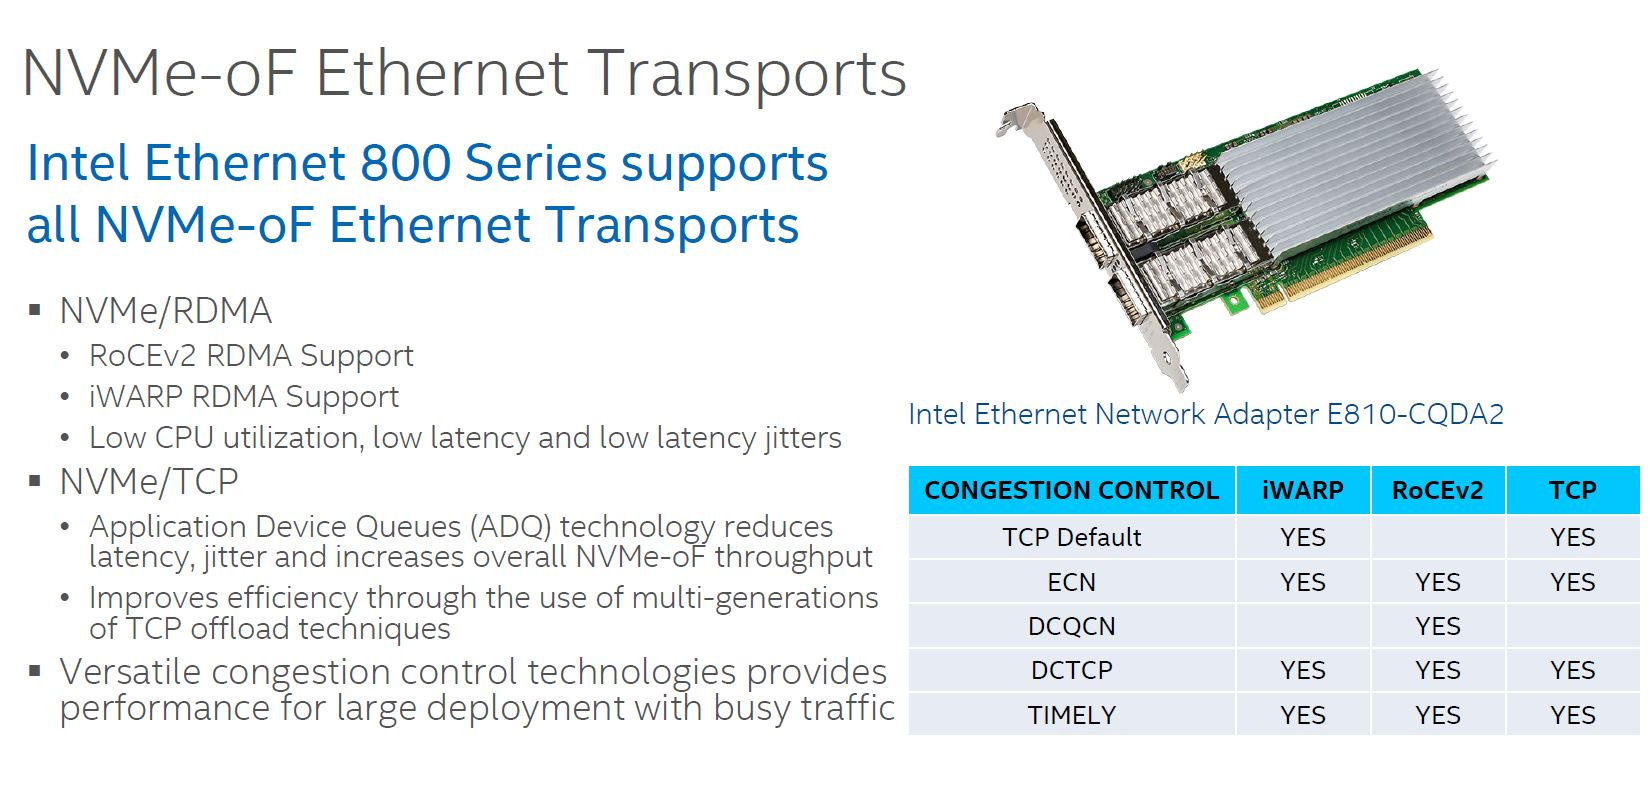 Intel 800 Series NVMeoF Transports